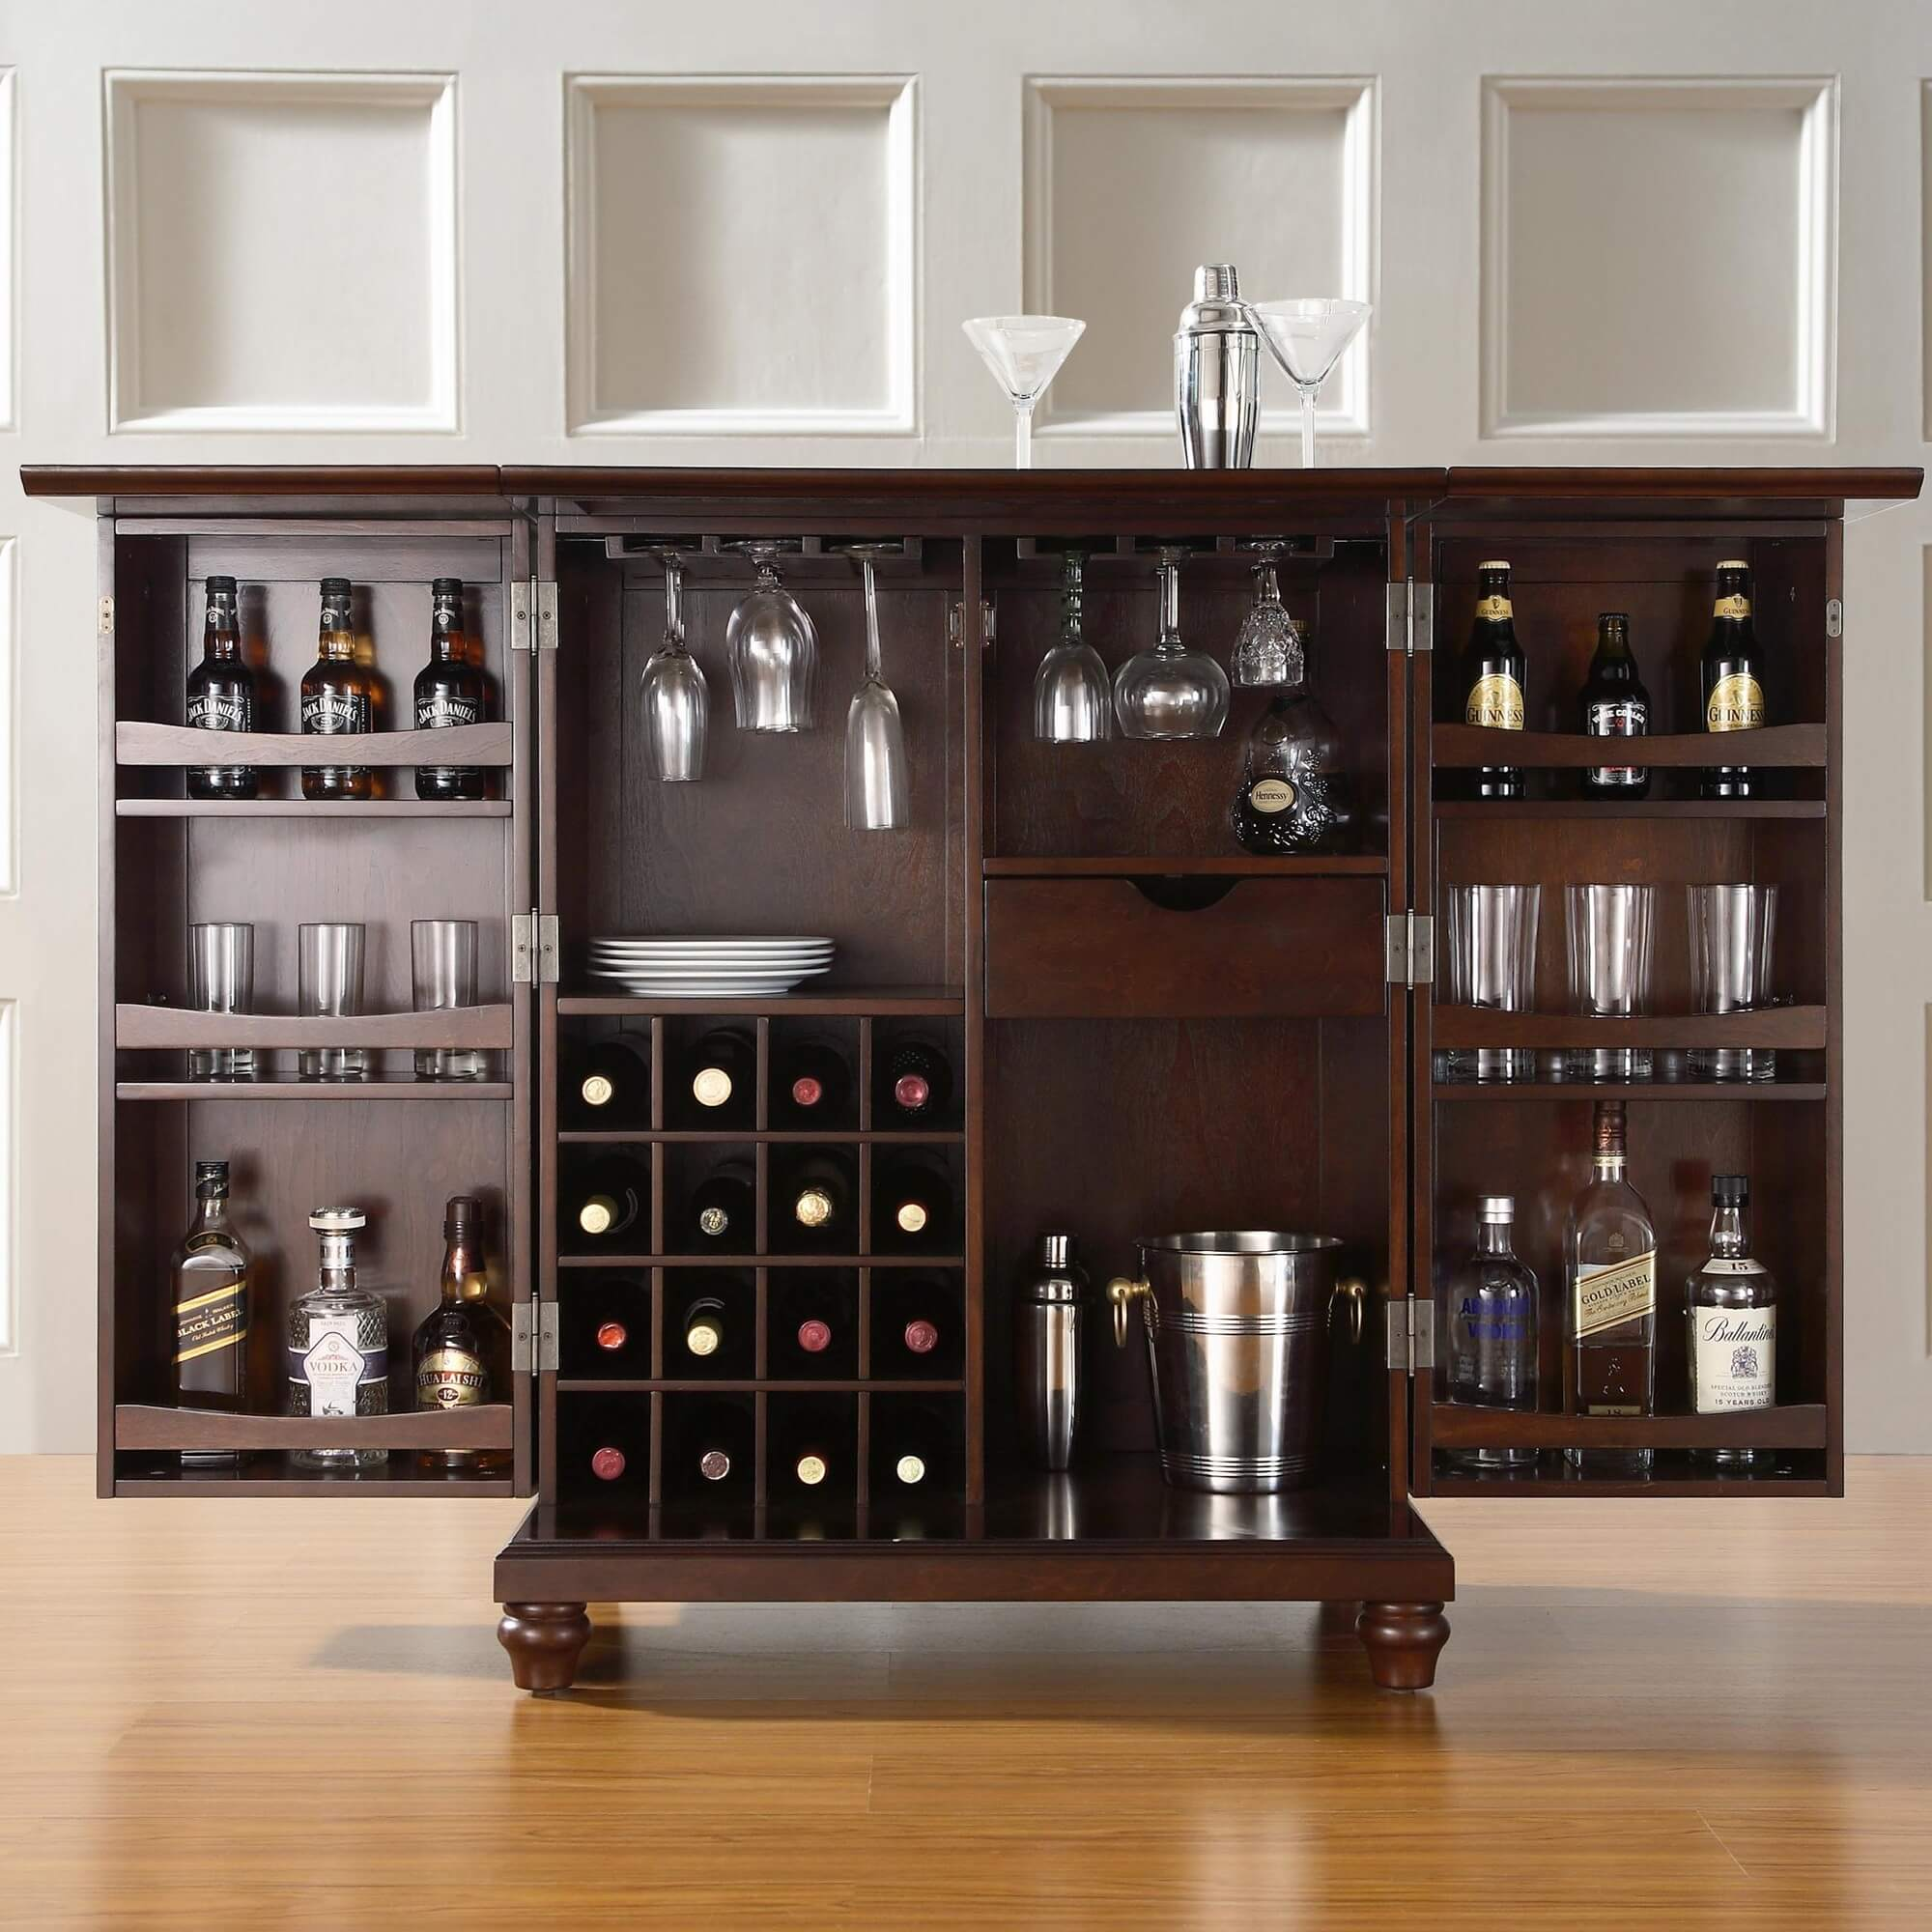 Ordinaire Rear Storage View Of Elegant Compact Home Bar Cabinet Set.